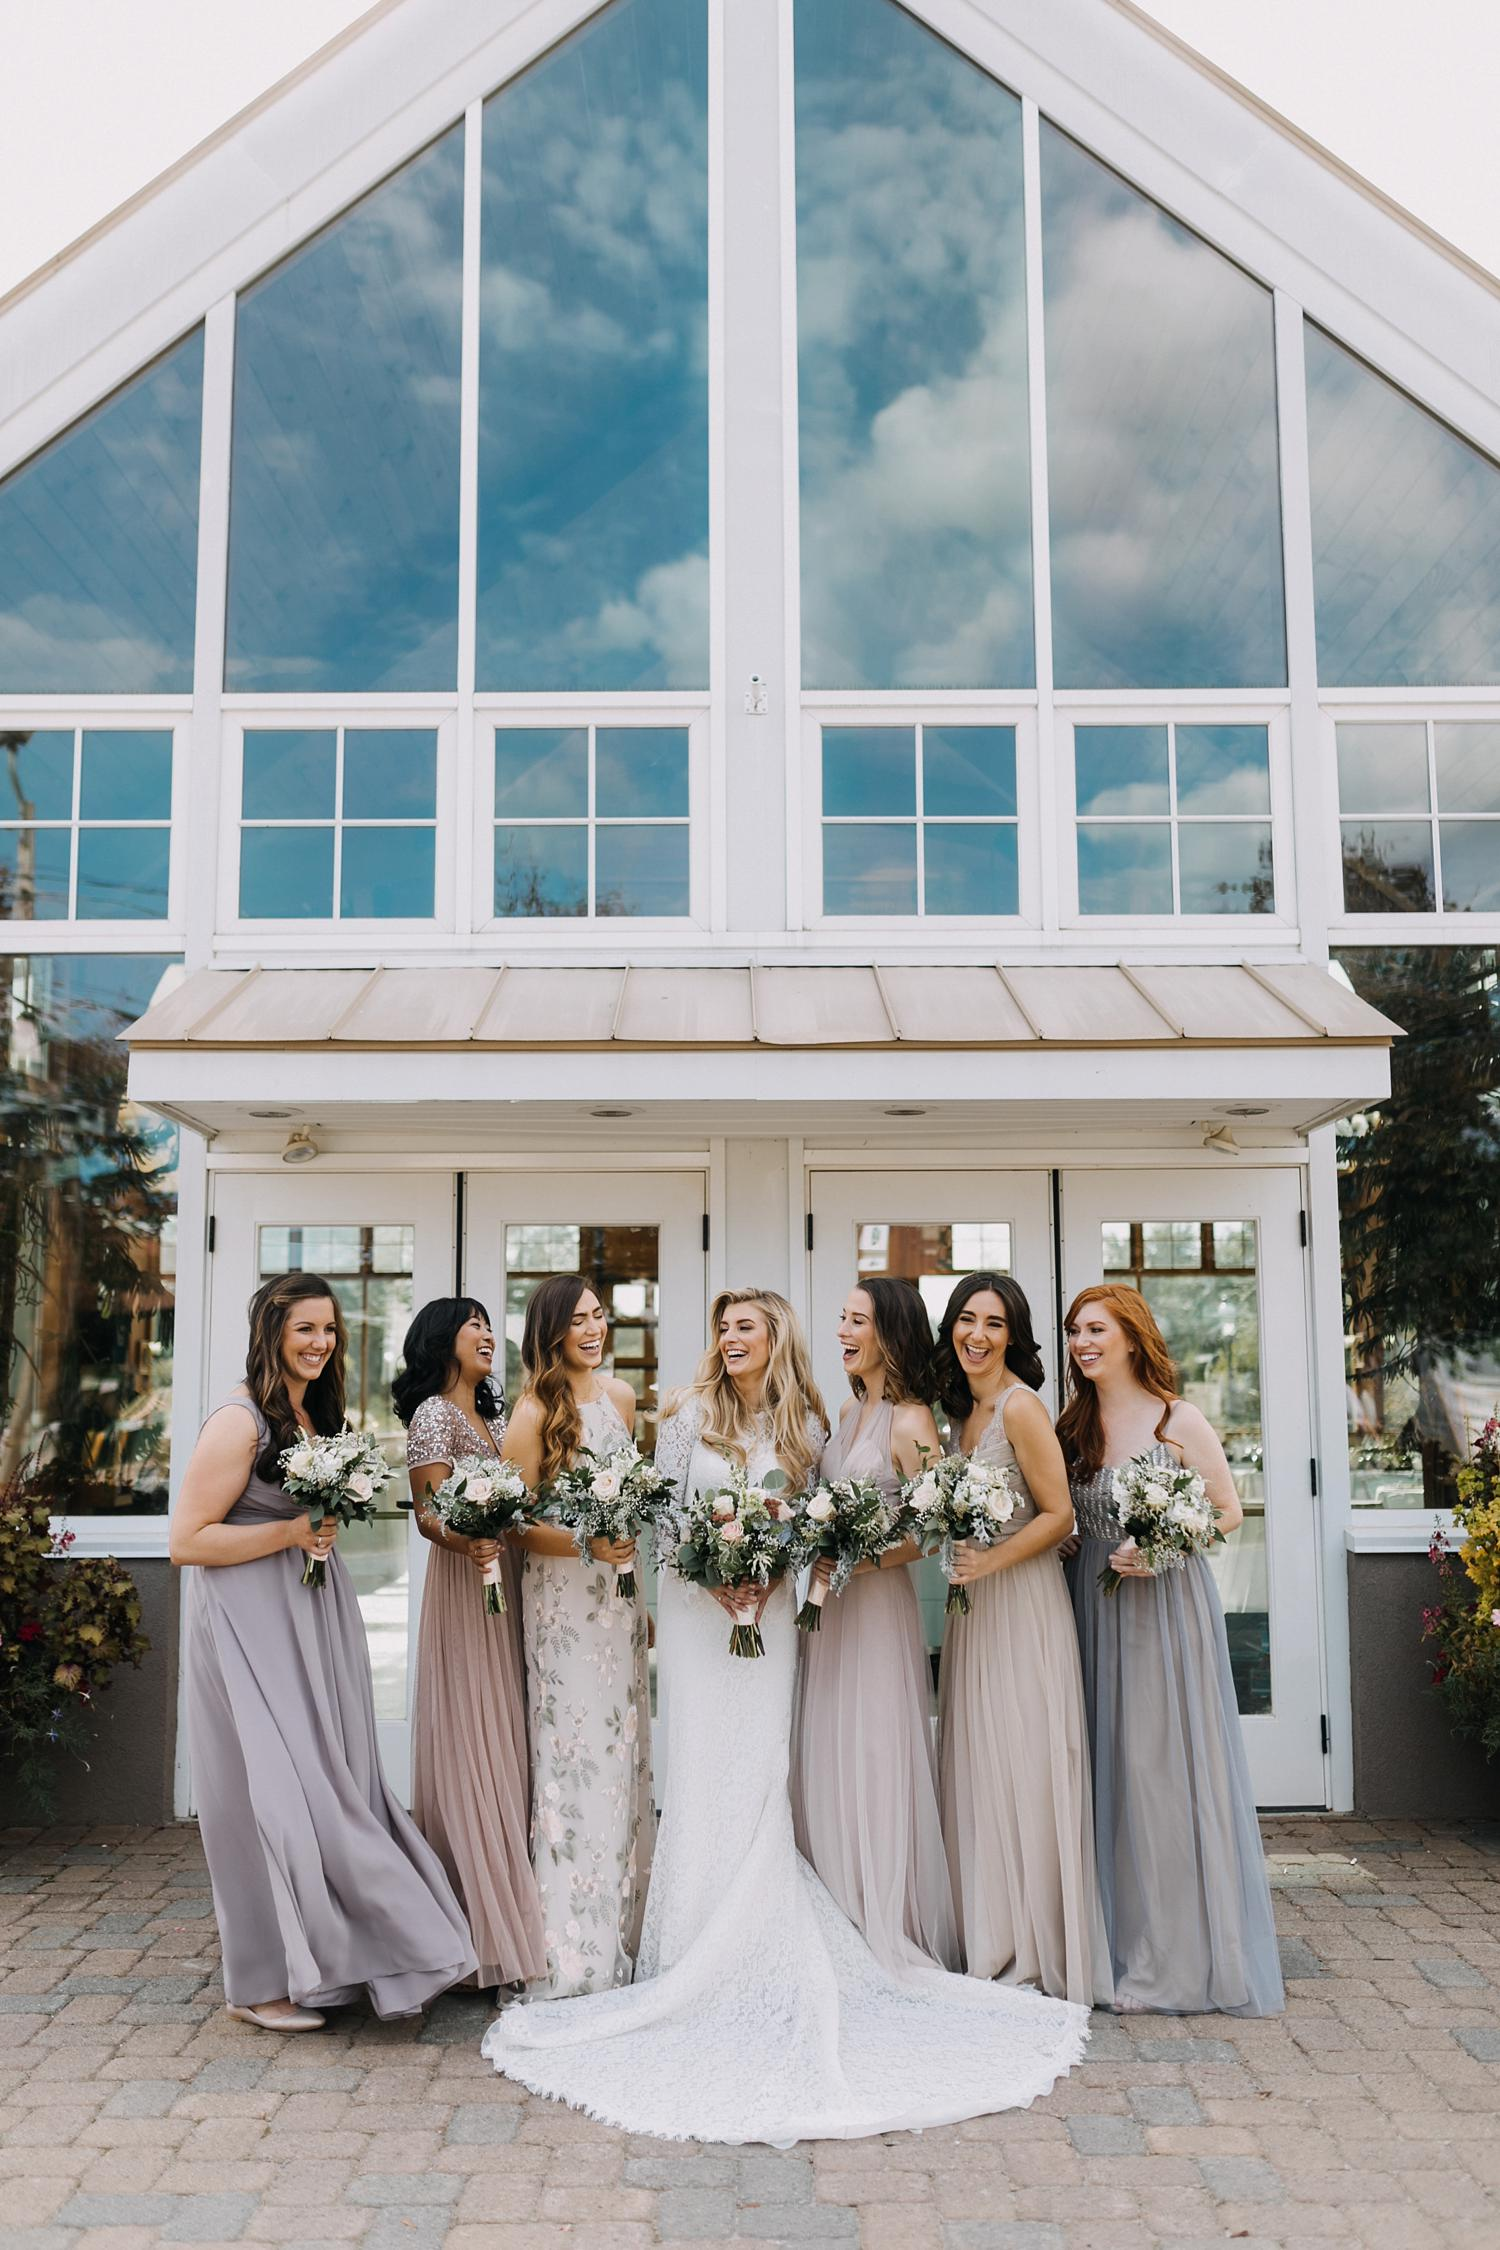 Conservatory Sussex County Fairgrounds Augusta NJ Wedding Photography Steph Massaro Bridal Party